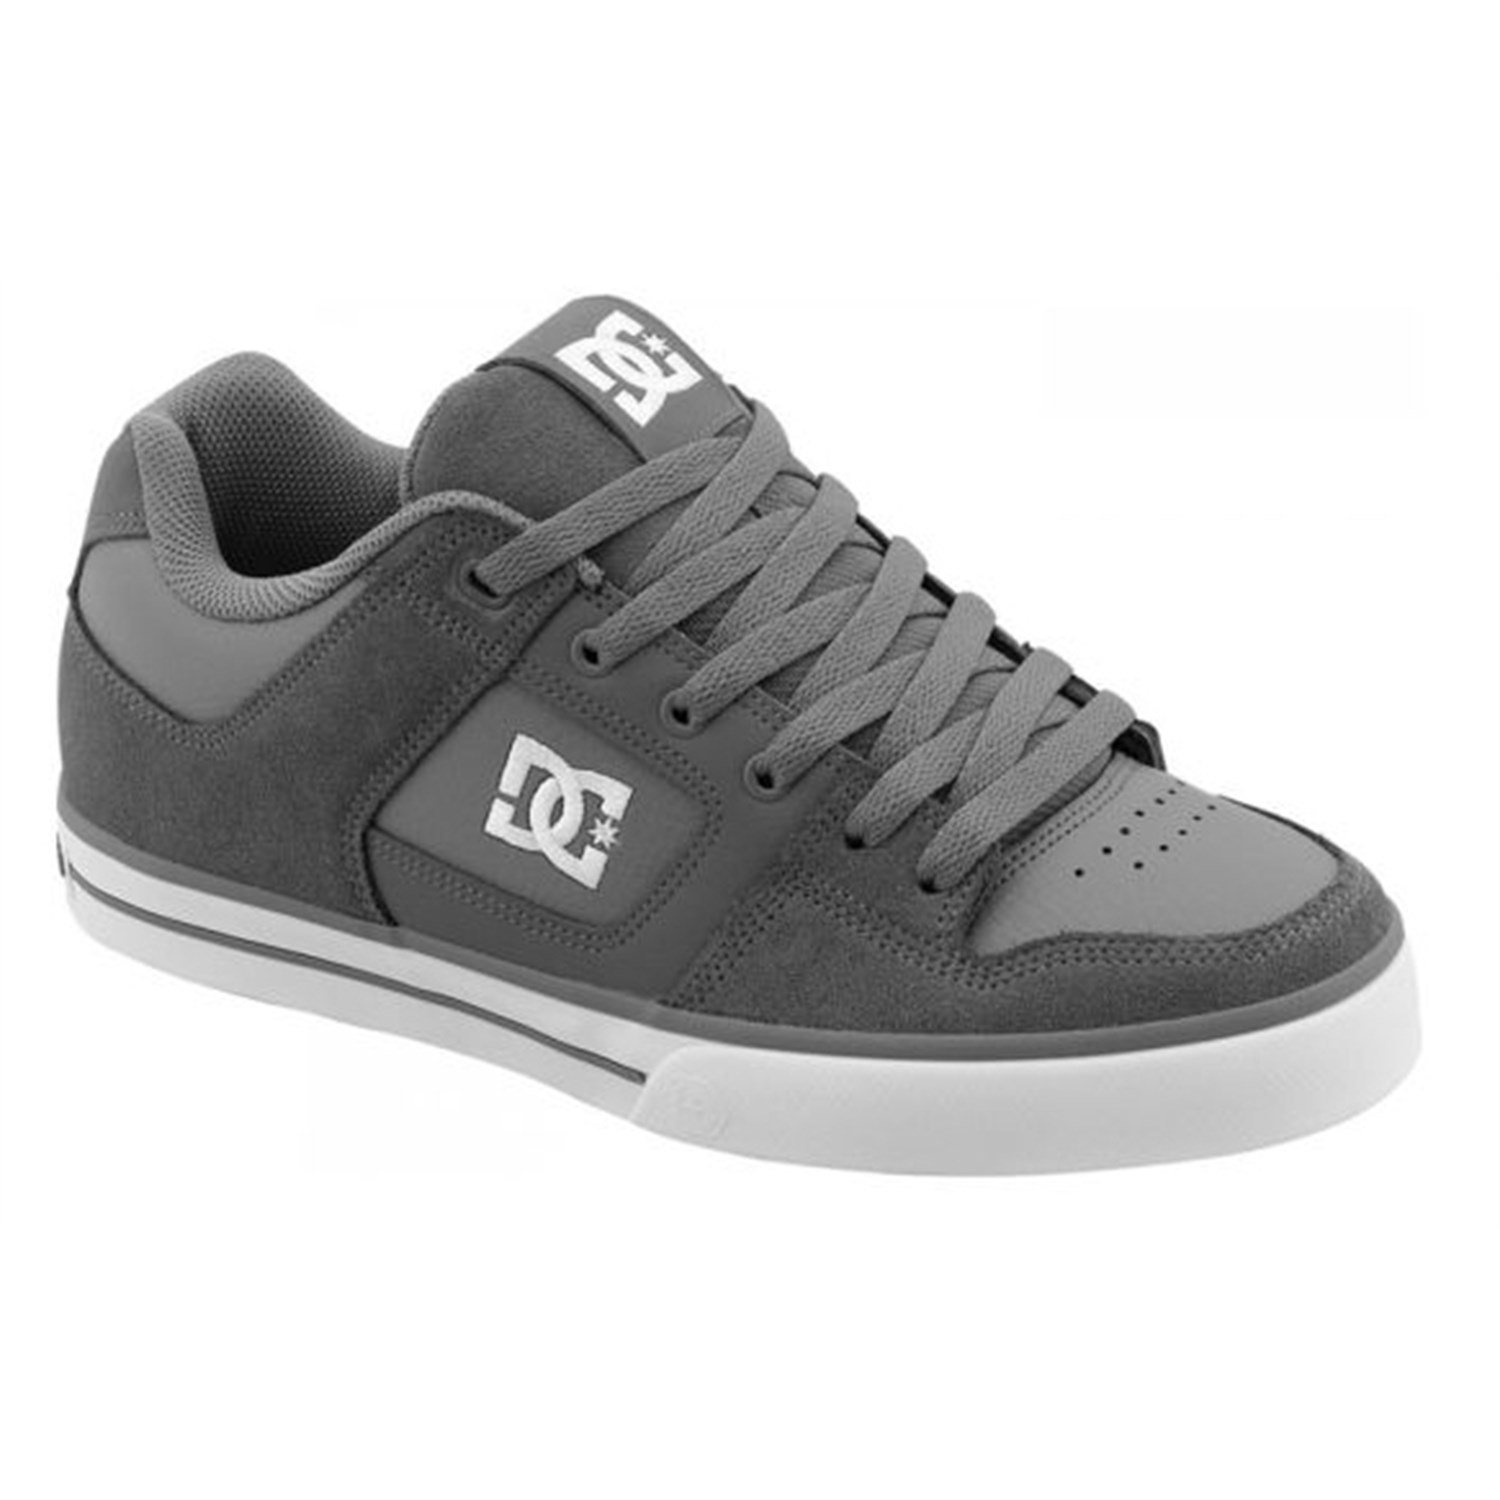 7 items· Find listings related to Dc Shoe Outlet in Millenia on skuleaswiru.cf See reviews, photos, directions, phone numbers and more for Dc Shoe Outlet locations in Millenia, Orlando, FL. Start your search by typing in the business name below.